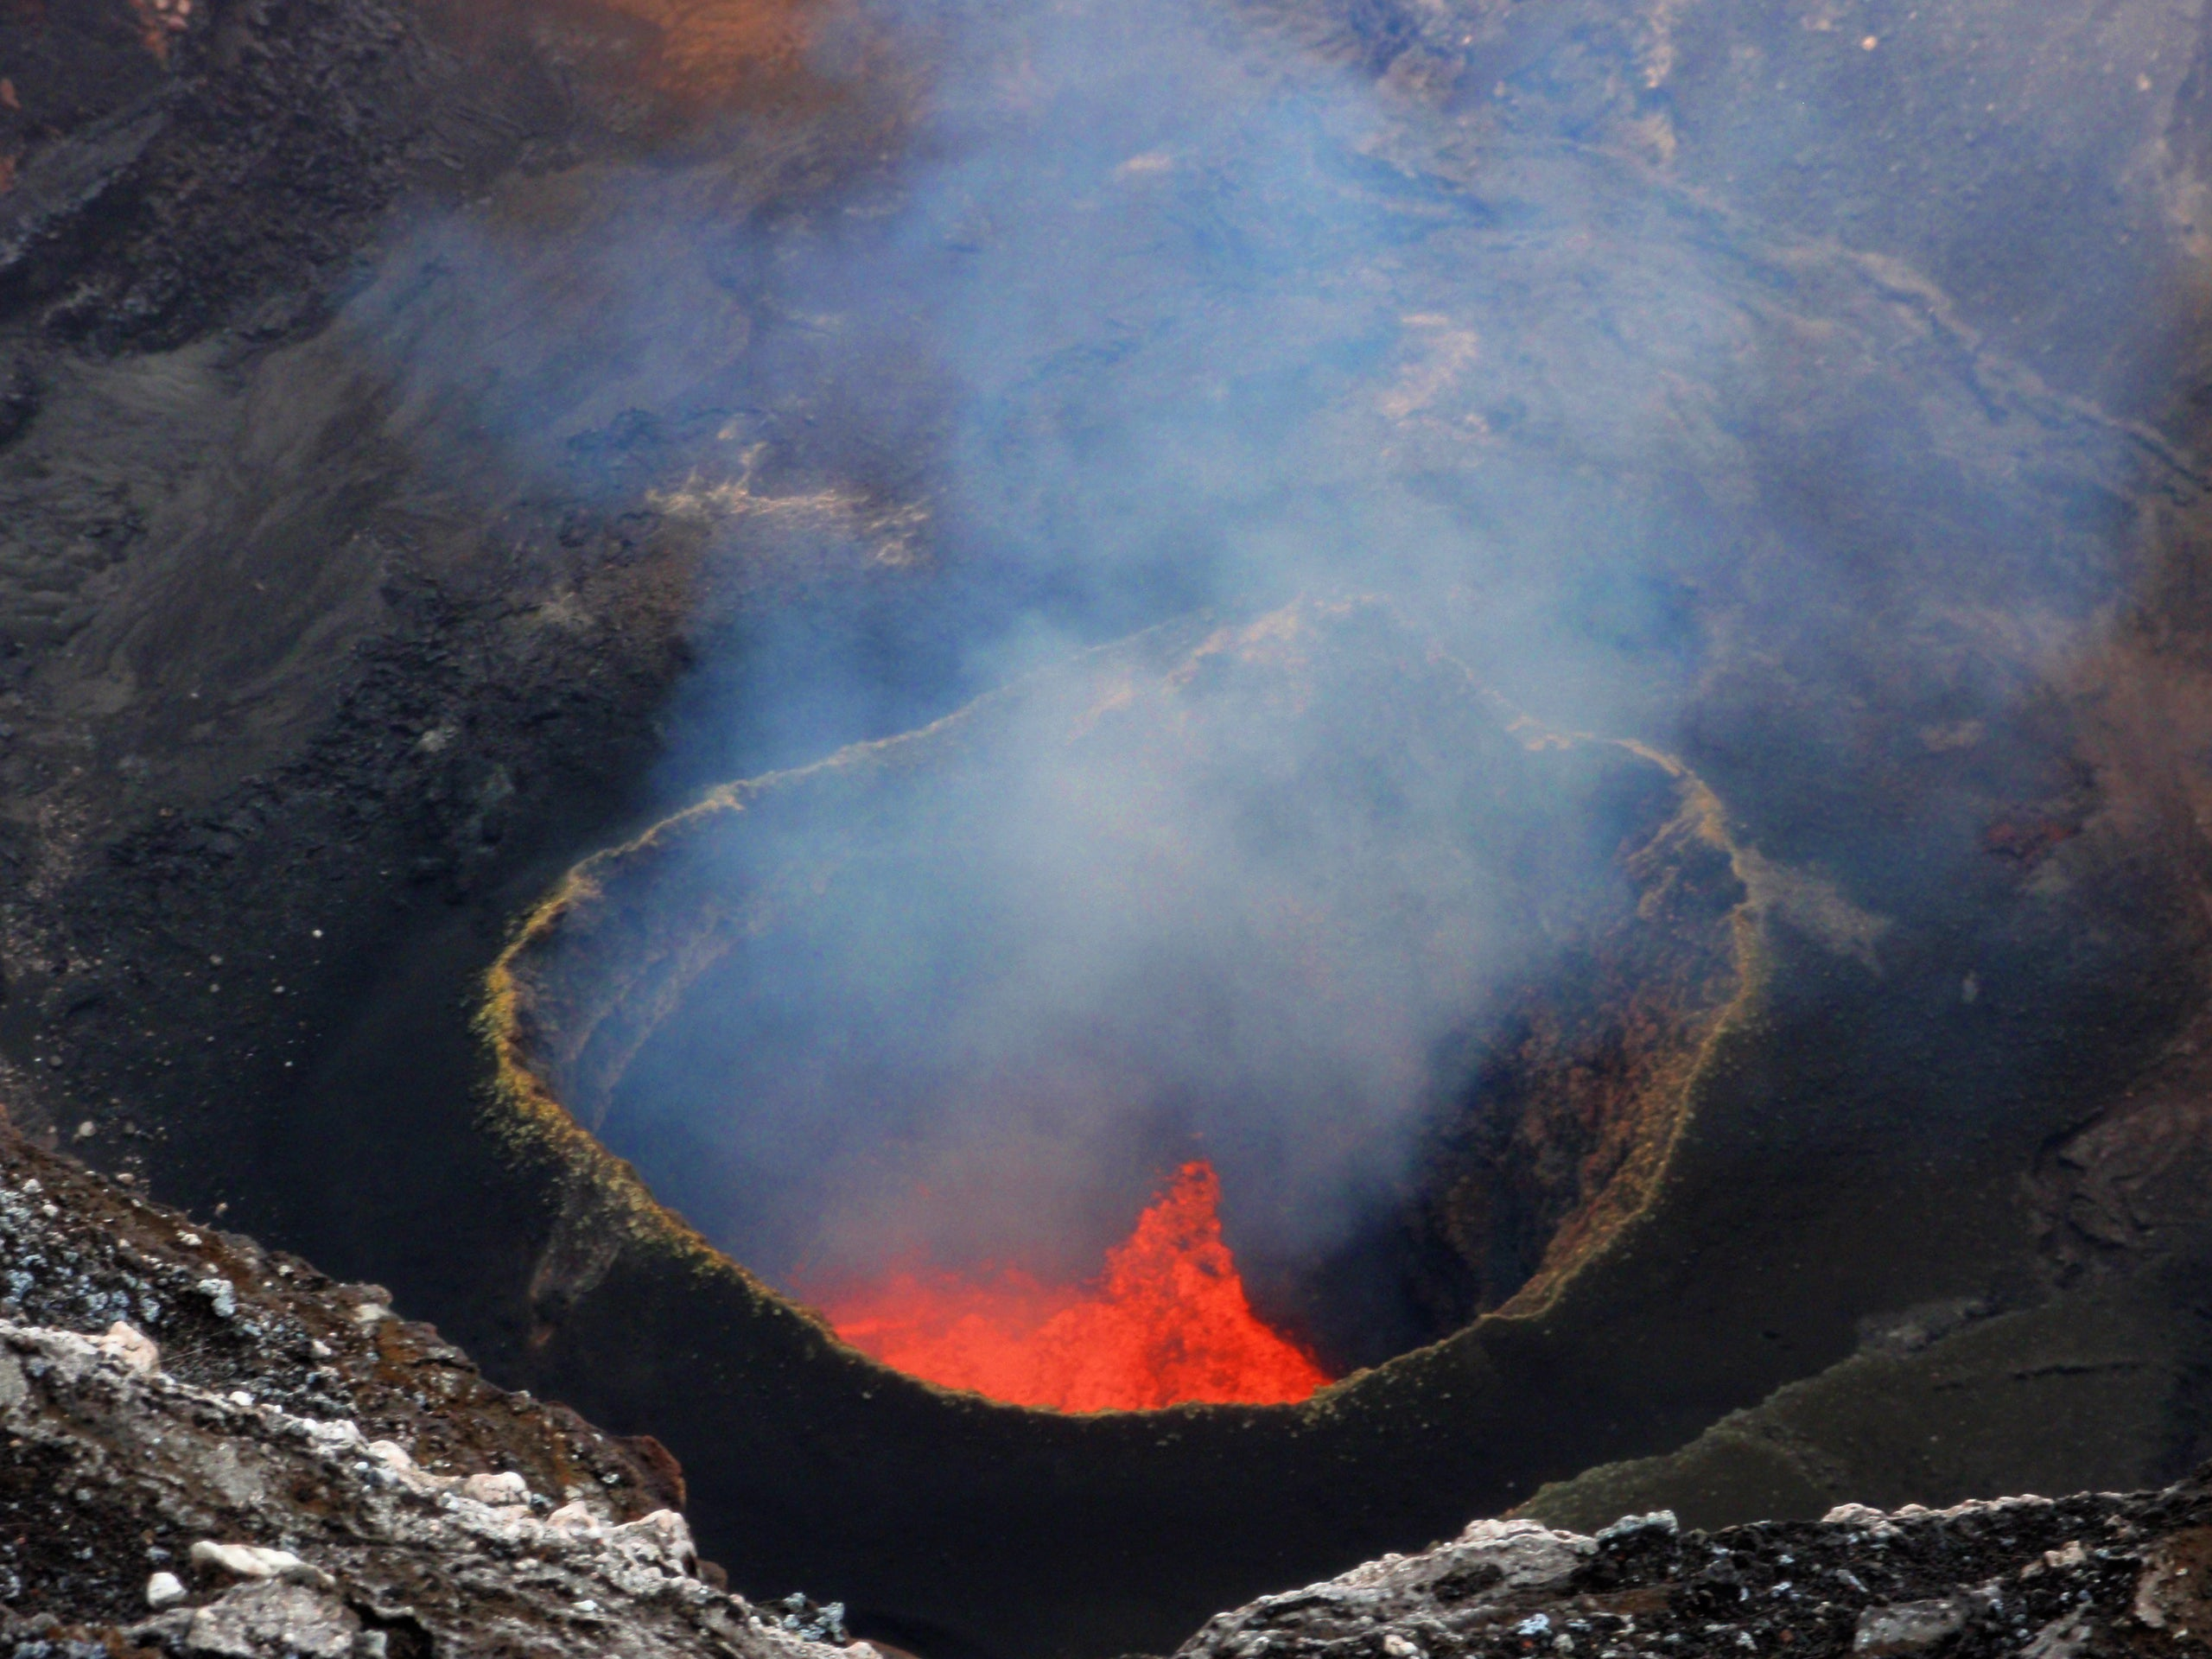 Drones Mapped This Giant Volcano, And The 3D Rendering Is Awesome